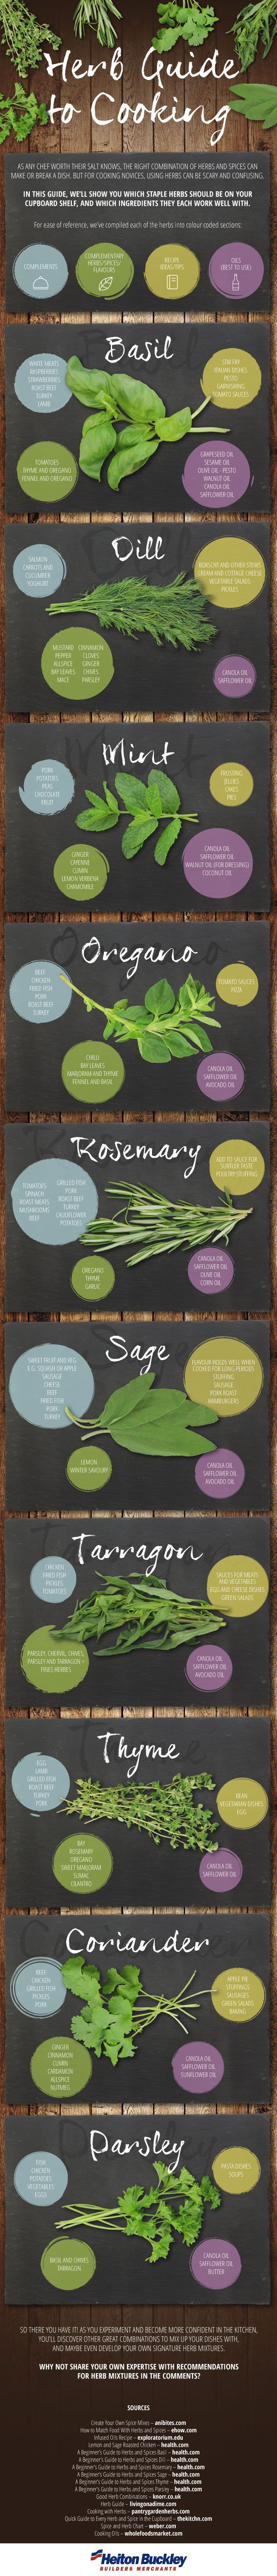 Infographic: Herb Guide To Cooking #infographic